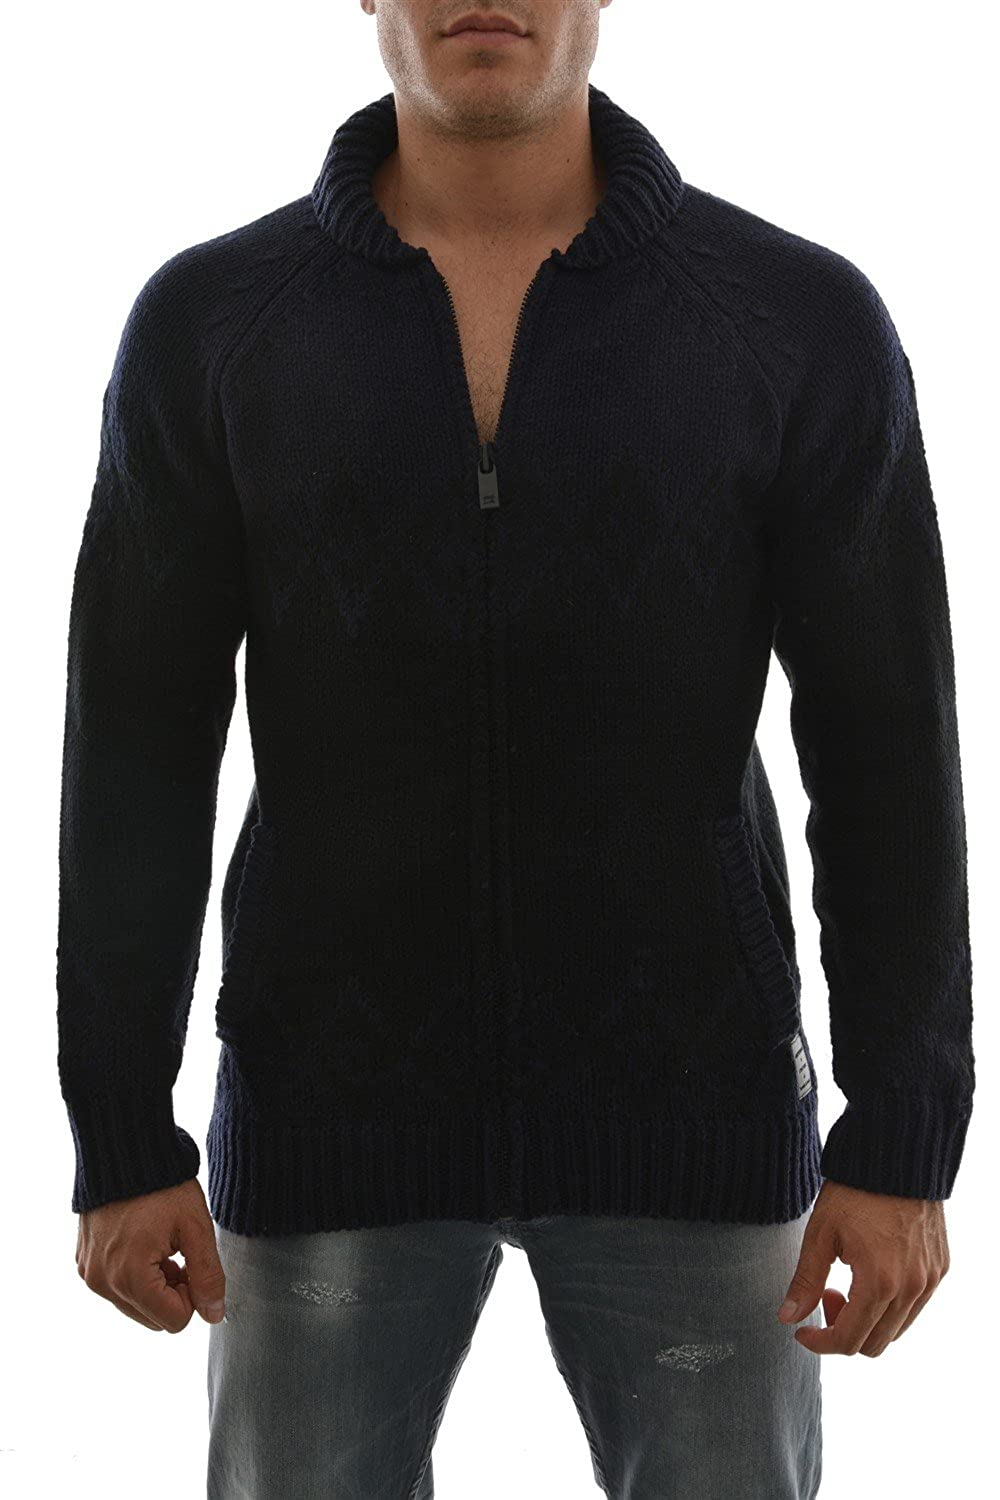 Scotch & Soda - Knitted Zip Thru Cardigan, Dark Blue